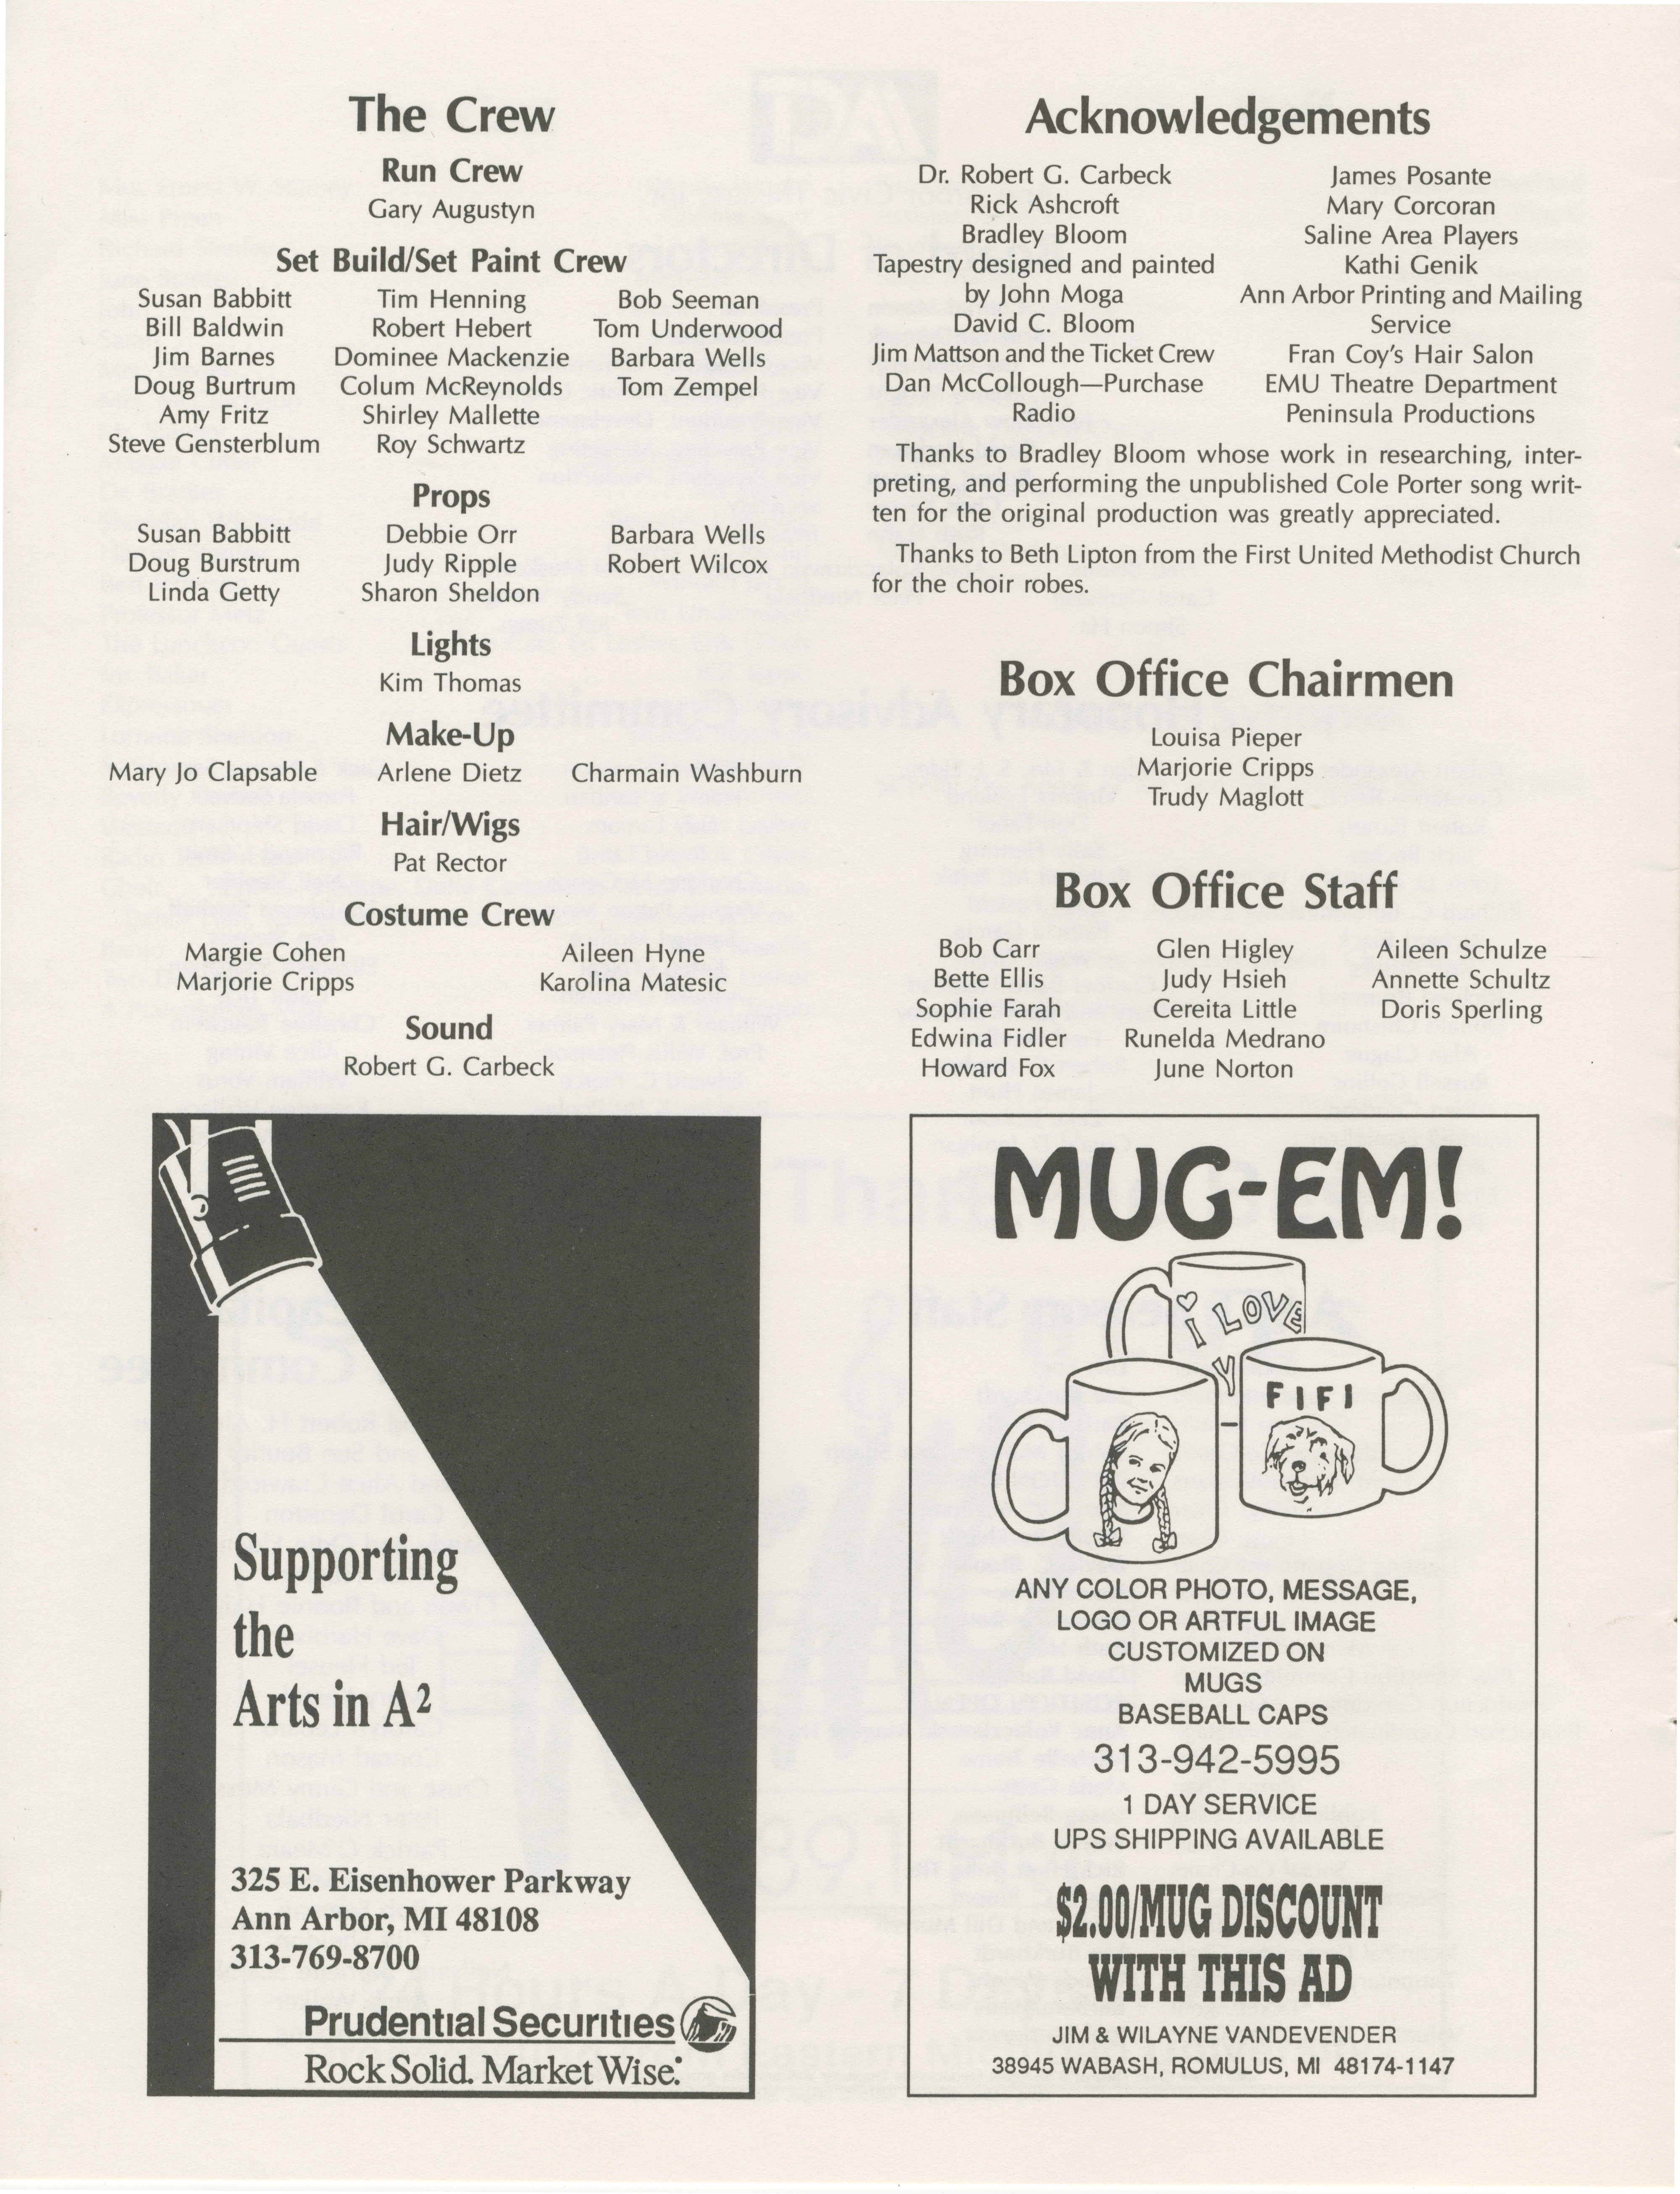 Ann Arbor Civic Theatre Program: The Man Who Came To Dinner, October 16, 1991 image